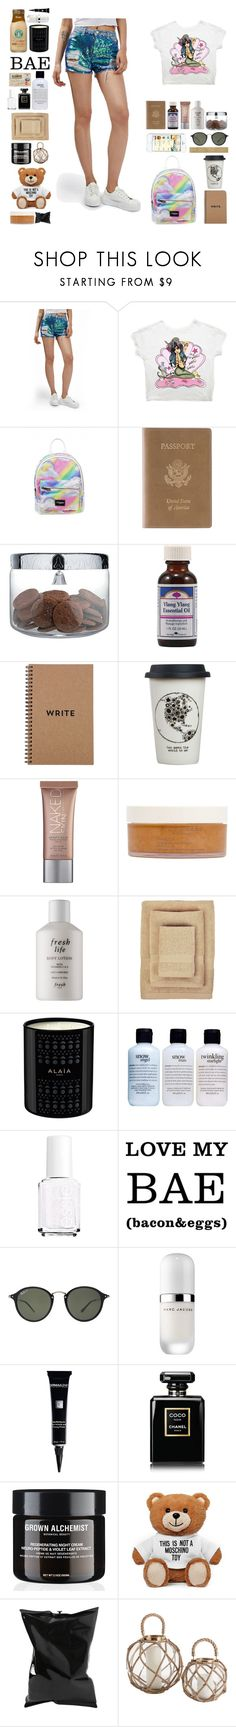 """""""Sem título #12004"""" by nathsouzaz ❤ liked on Polyvore featuring Topshop, Royce Leather, Alessi, Ylang Ylang, Natural Life, Urban Decay, African Botanics, Fresh, Nine Space and philosophy"""